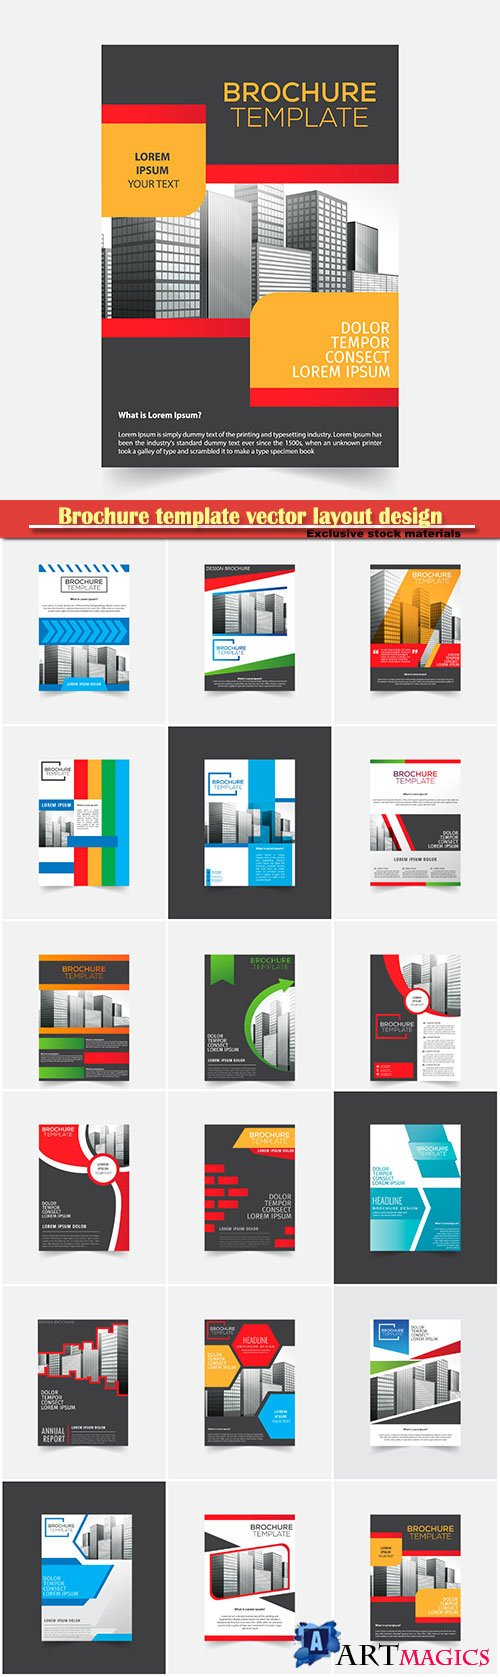 Brochure template vector layout design, corporate business annual report, magazine, flyer mockup # 107